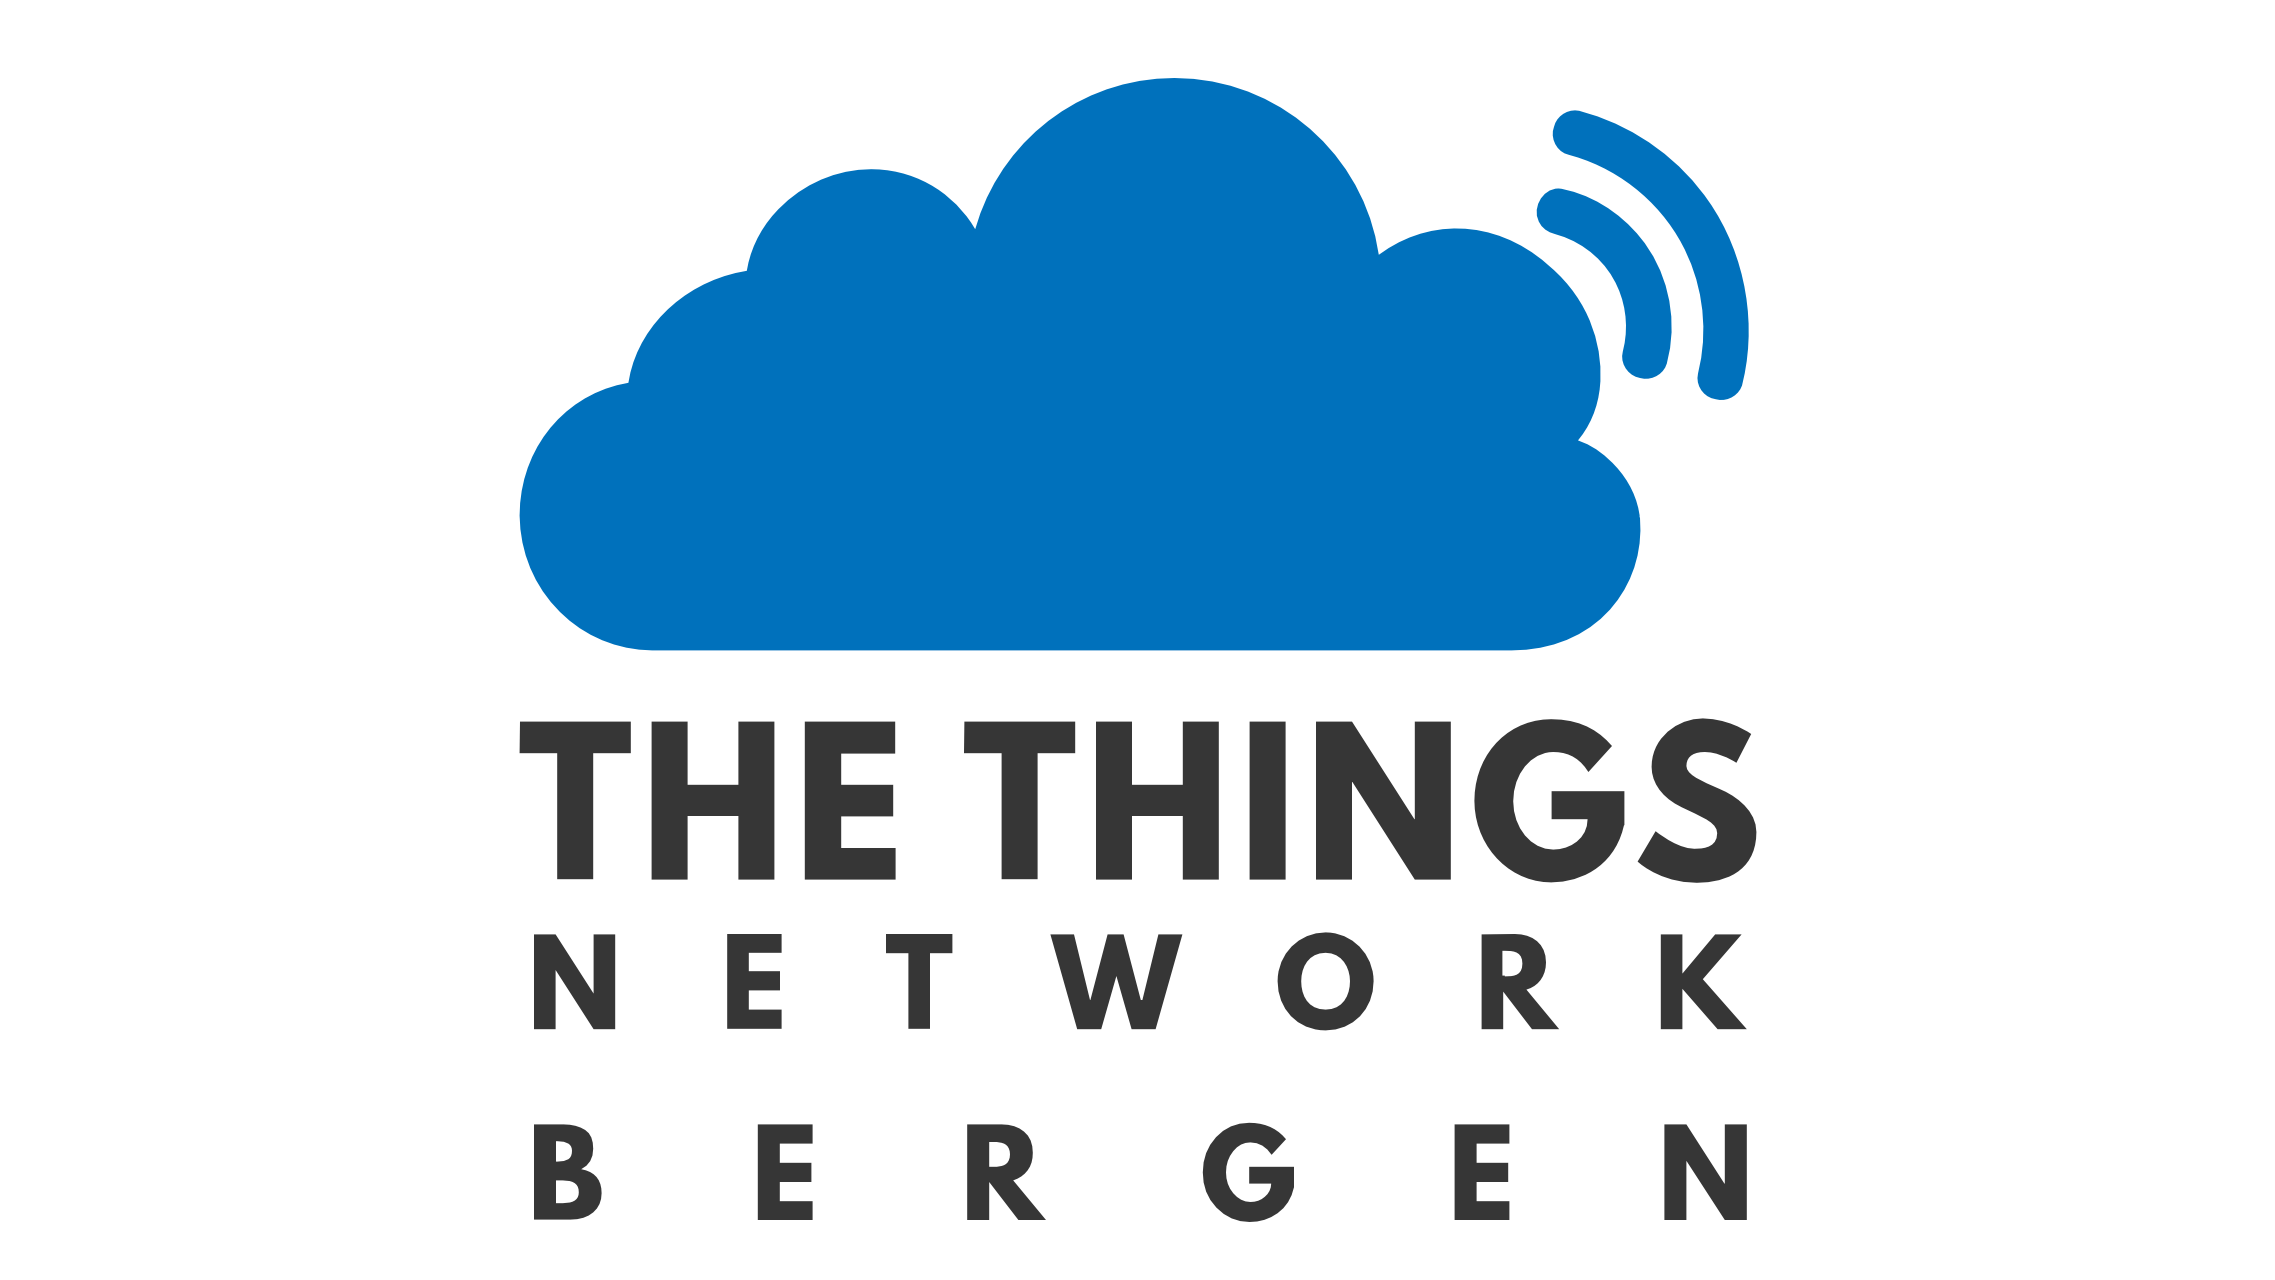 The Things Network Bergen